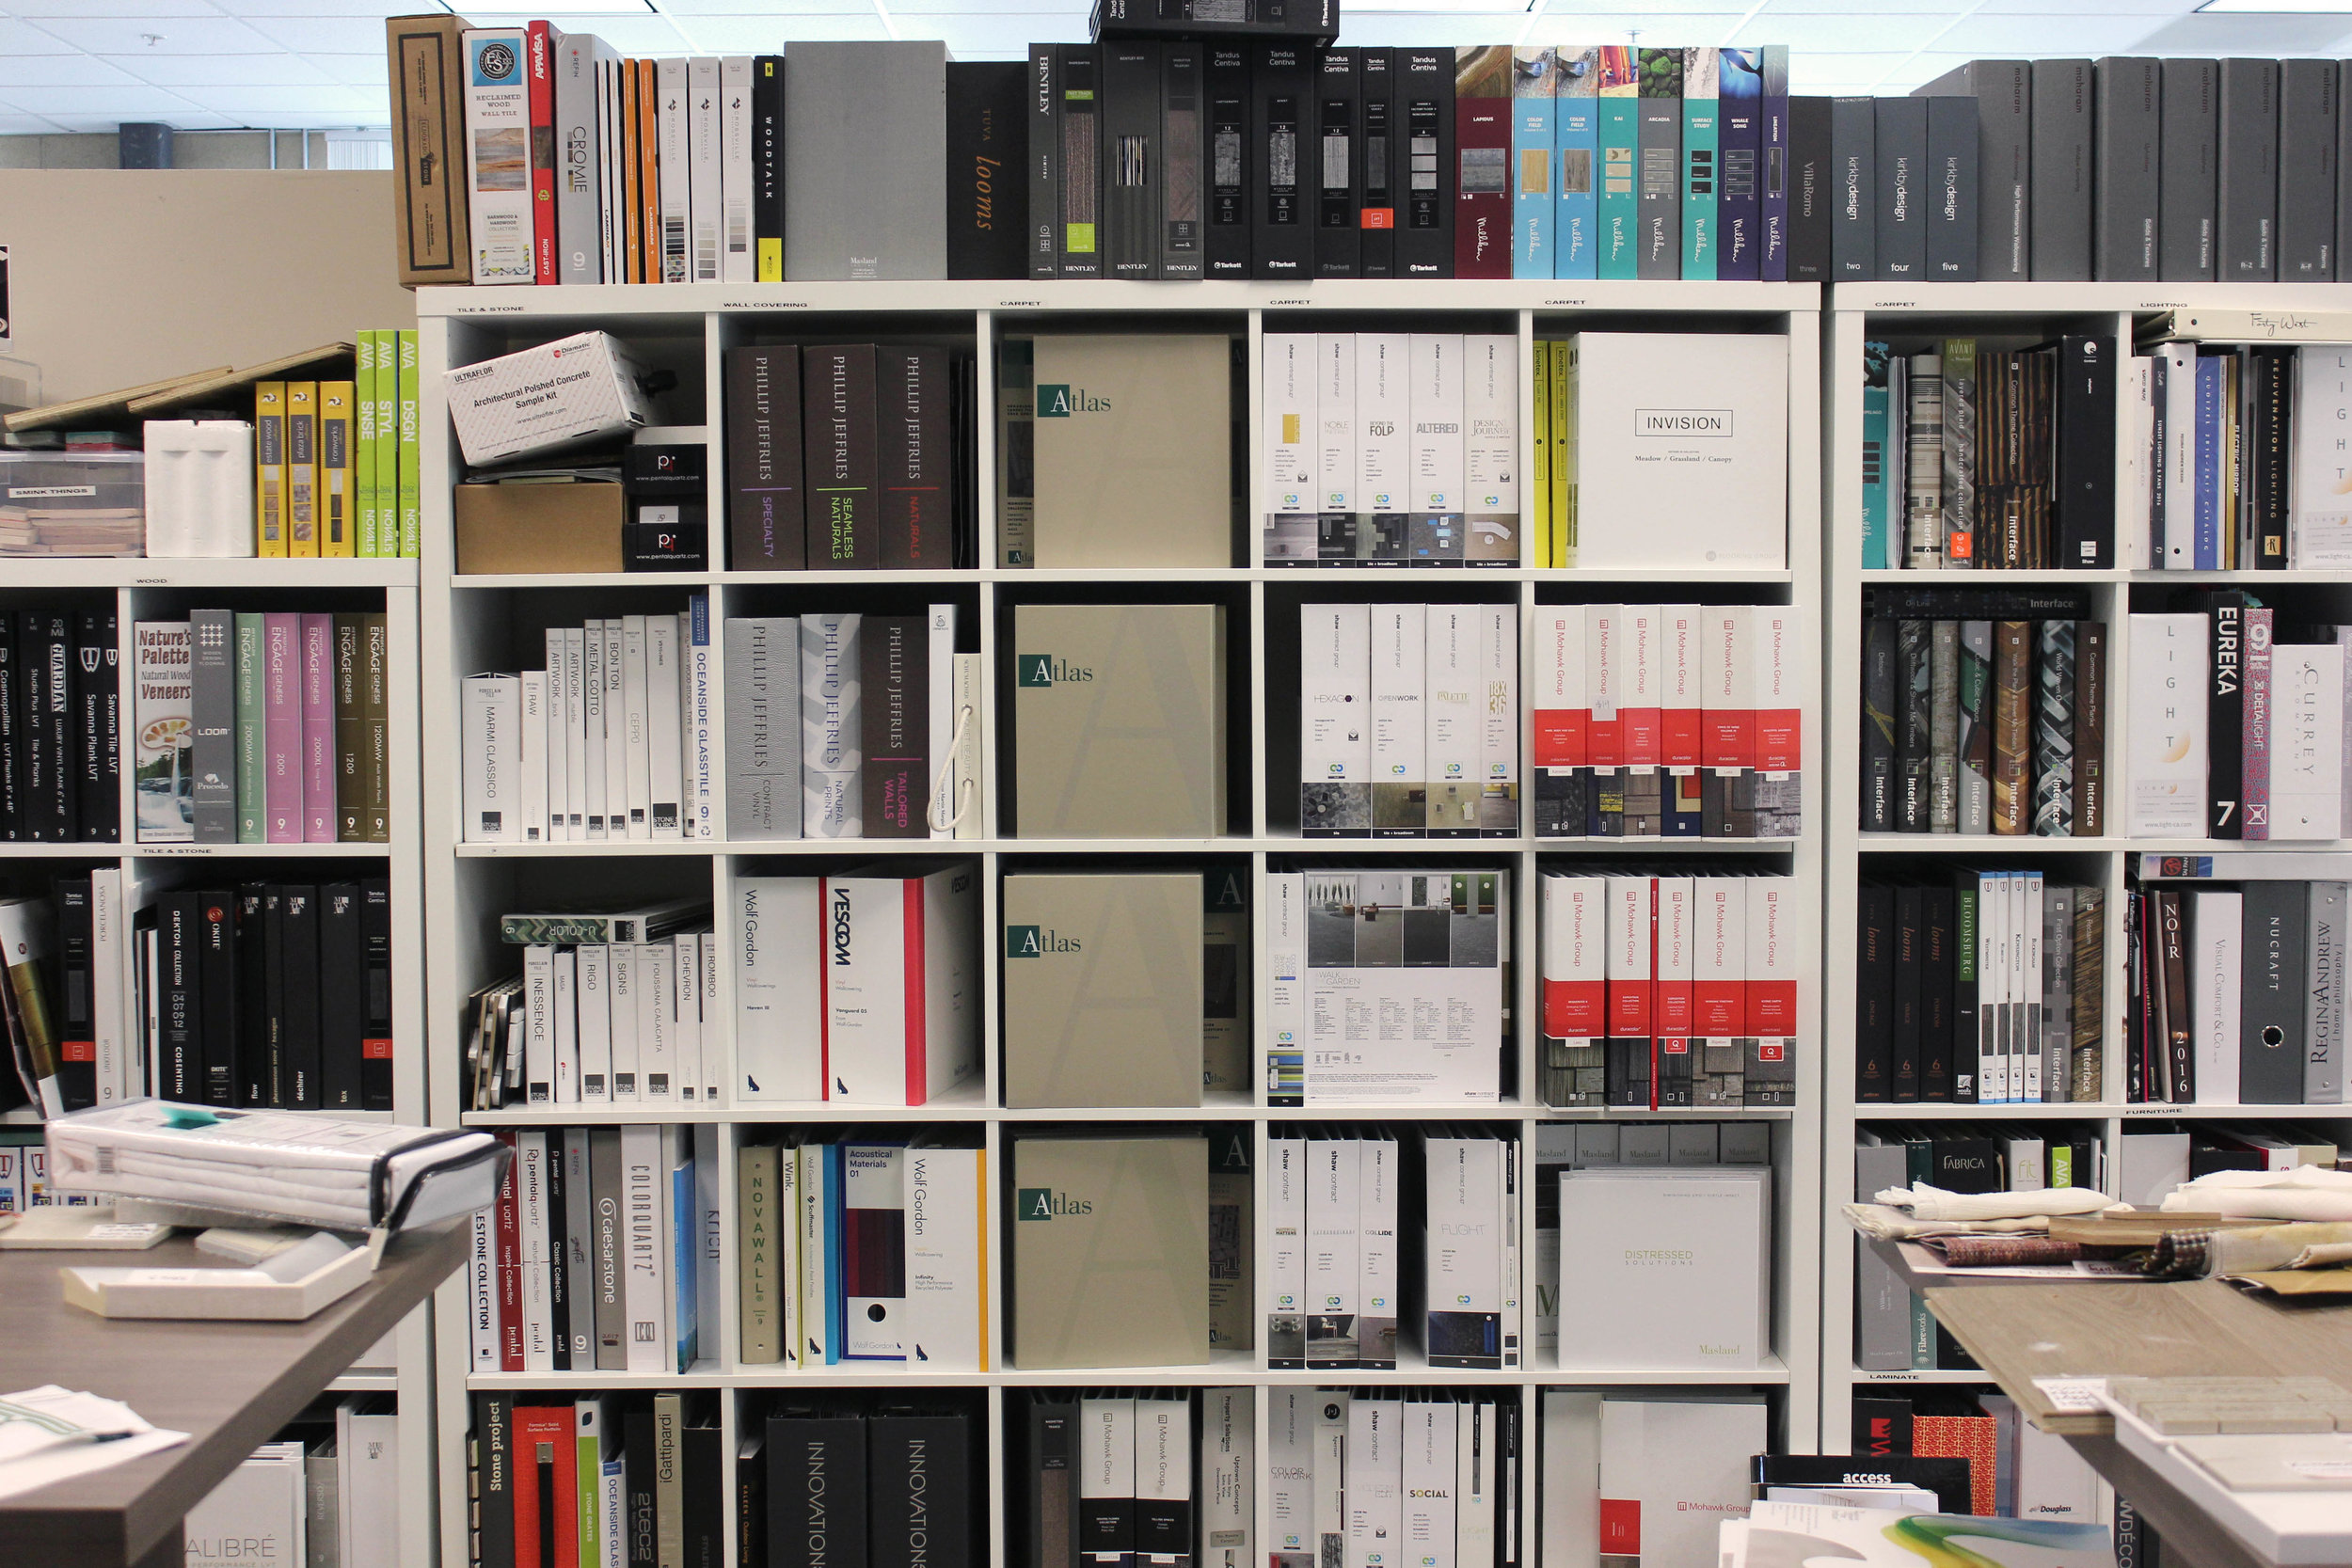 Probably our most organized area of the library!